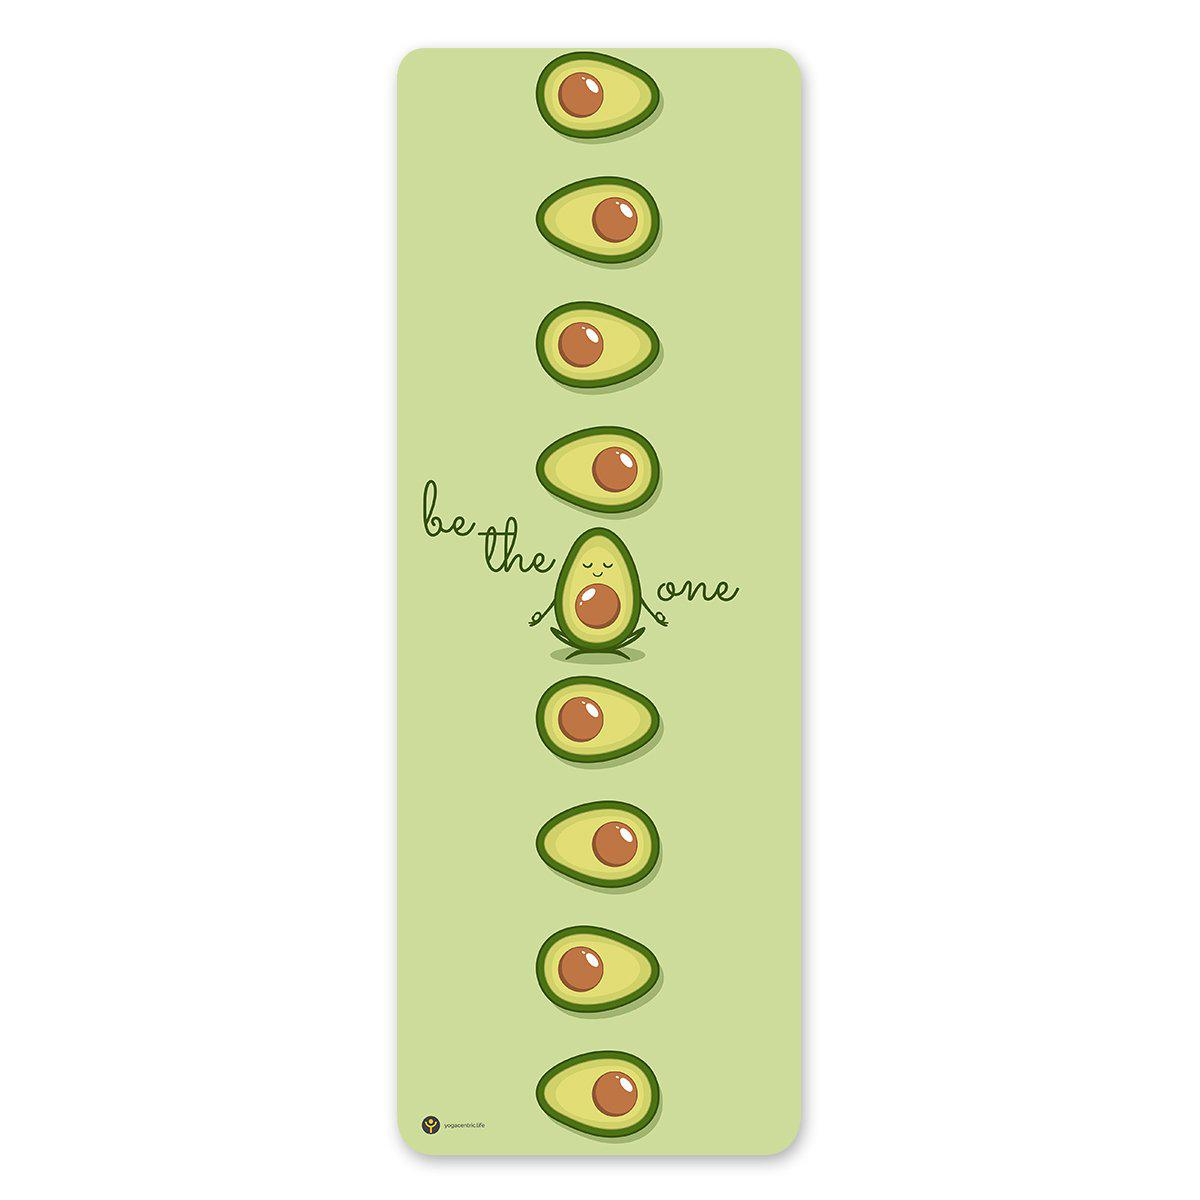 Awesome Avocados Yoga Mat - YogaCentric.life